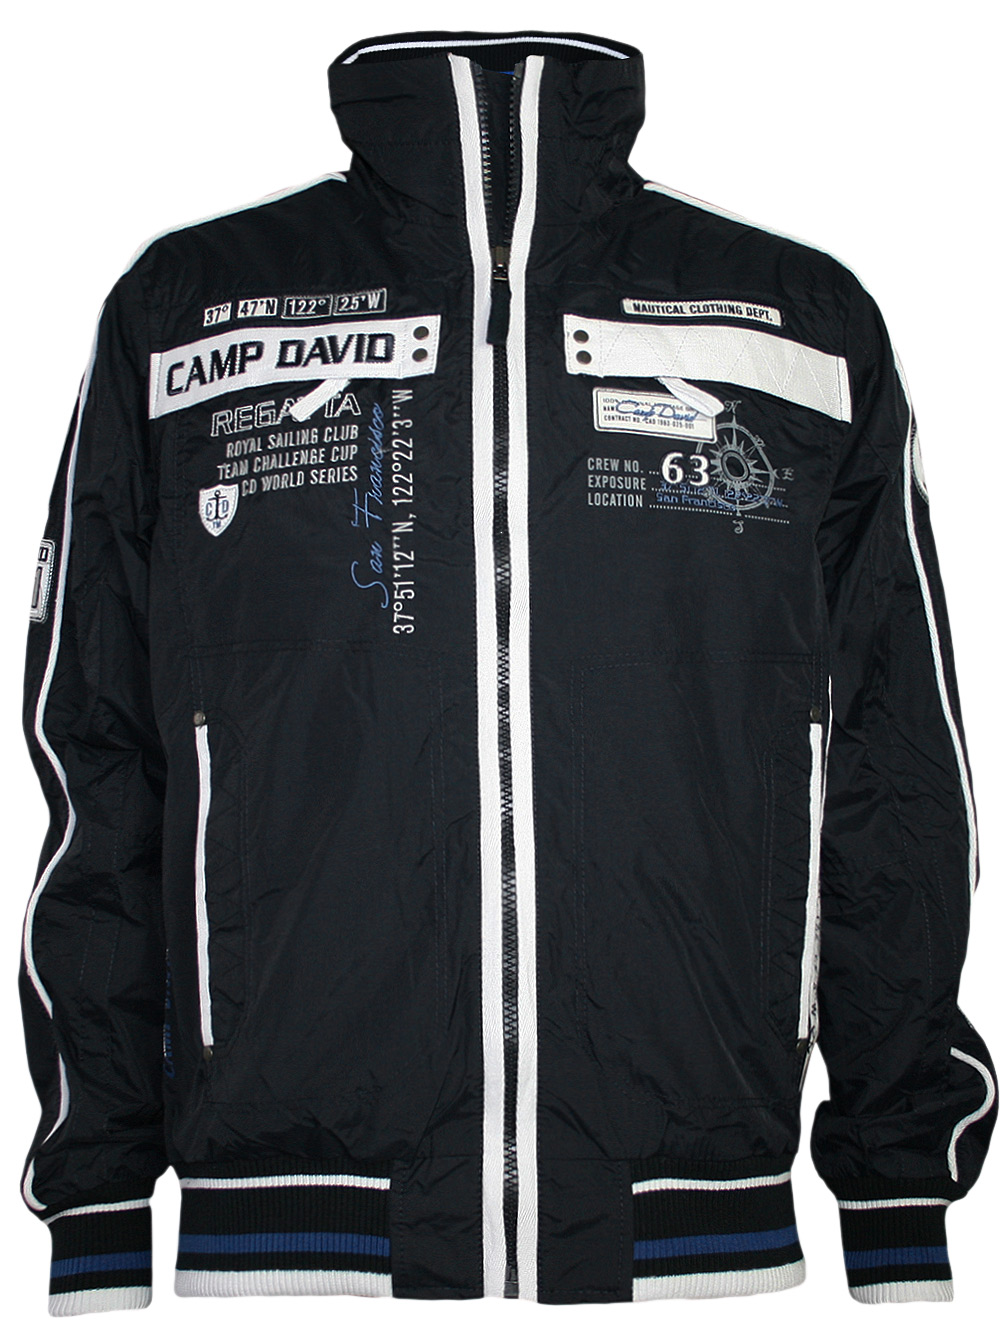 tolle camp david herren jacke sailing cup 3 in navy. Black Bedroom Furniture Sets. Home Design Ideas